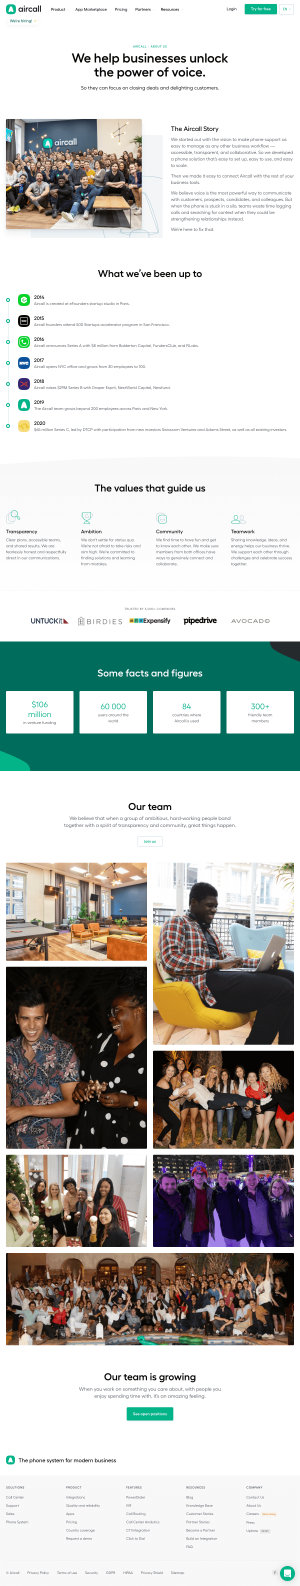 Aircall – About Us page